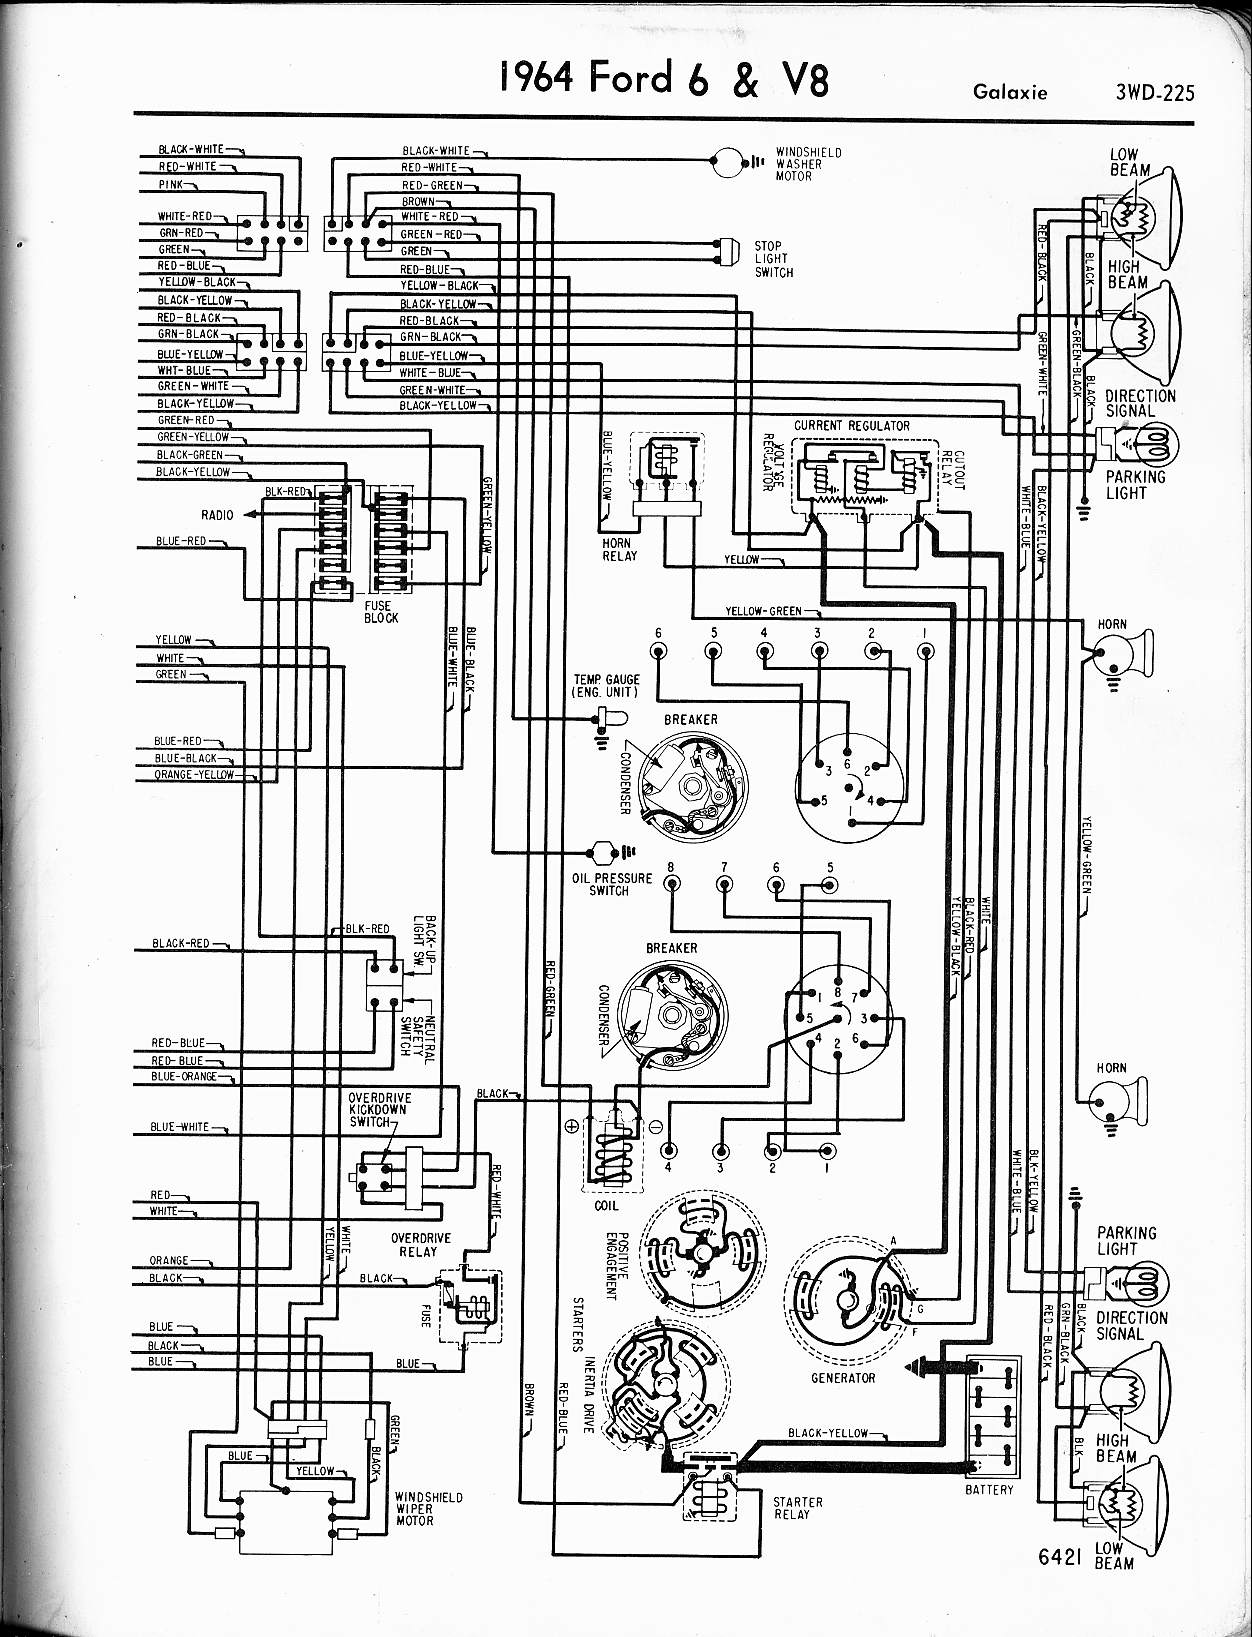 5idc1 Buick Regal Custom Will Not Start likewise 1961 Ford Galaxie Fuse Box further 590899 Finally Getting Some Work Done Again additionally 1955 Corvette Fuse Box Diagram moreover UO0x 15476. on 1968 mustang fuse box diagram